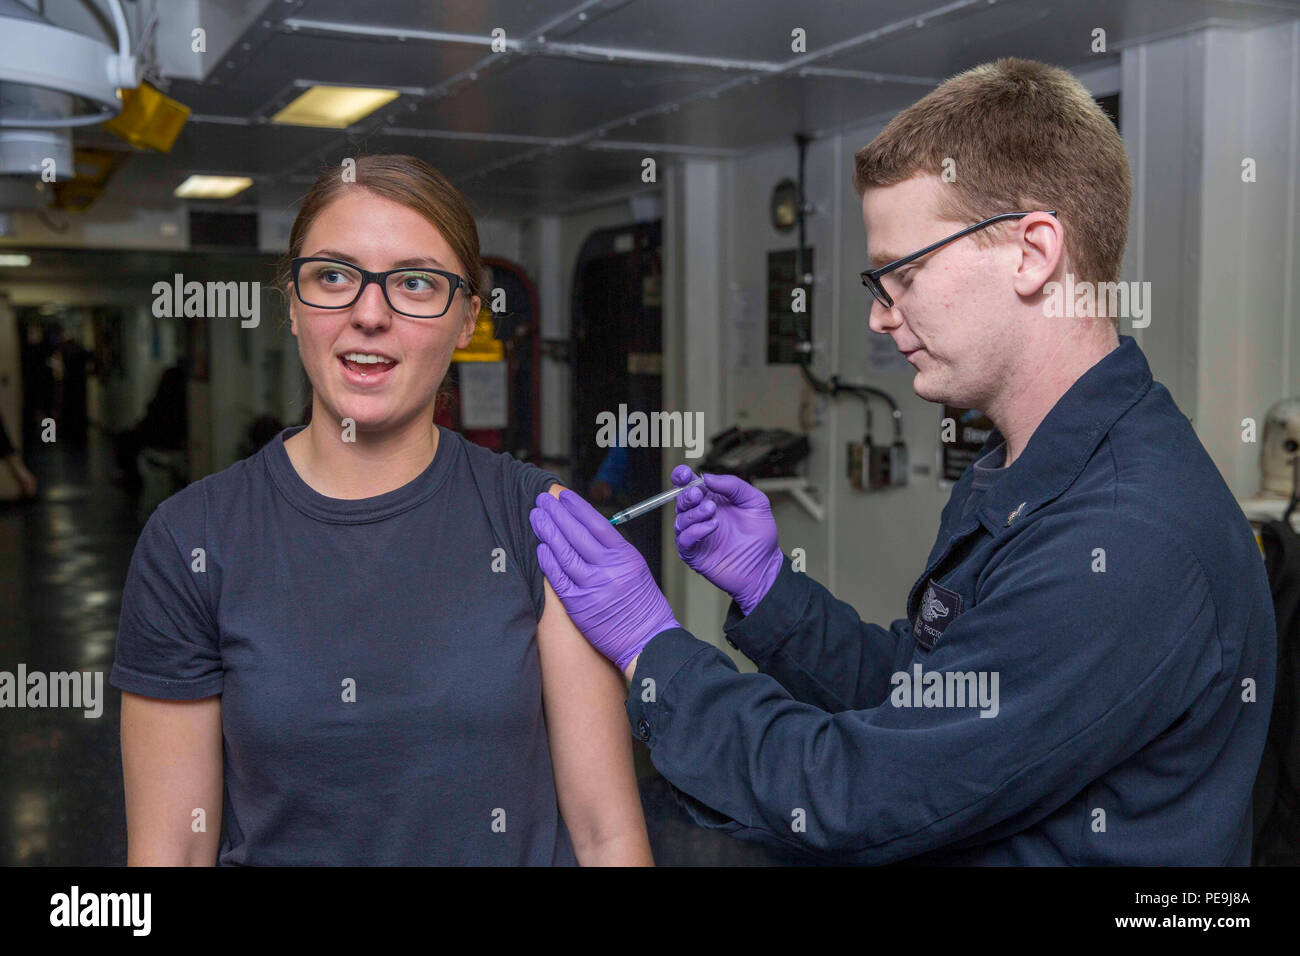 151120-N-XJ788-002 U.S. 5TH FLEET AREA OF OPERATIONS (Nov. 20, 2015) Hospital Corpsman 3rd Class Bradley Proctor, from Bossier City, La., administers an immunization shot to Intelligence Specialist 3rd Class Kaitlyn Smiddy, from Castle Rock, Colo., aboard the amphibious assault ship USS Kearsarge (LHD 3). Kearsarge is the flagship for the Kearsarge Amphibious Ready Group (ARG) and, with the embarked 26th Marine Expeditionary Unit (26 MEU), is deployed in support of maritime security operations and theater security cooperation efforts in the U.S. 5th Fleet area of operations. (U.S. Navy photo b - Stock Image